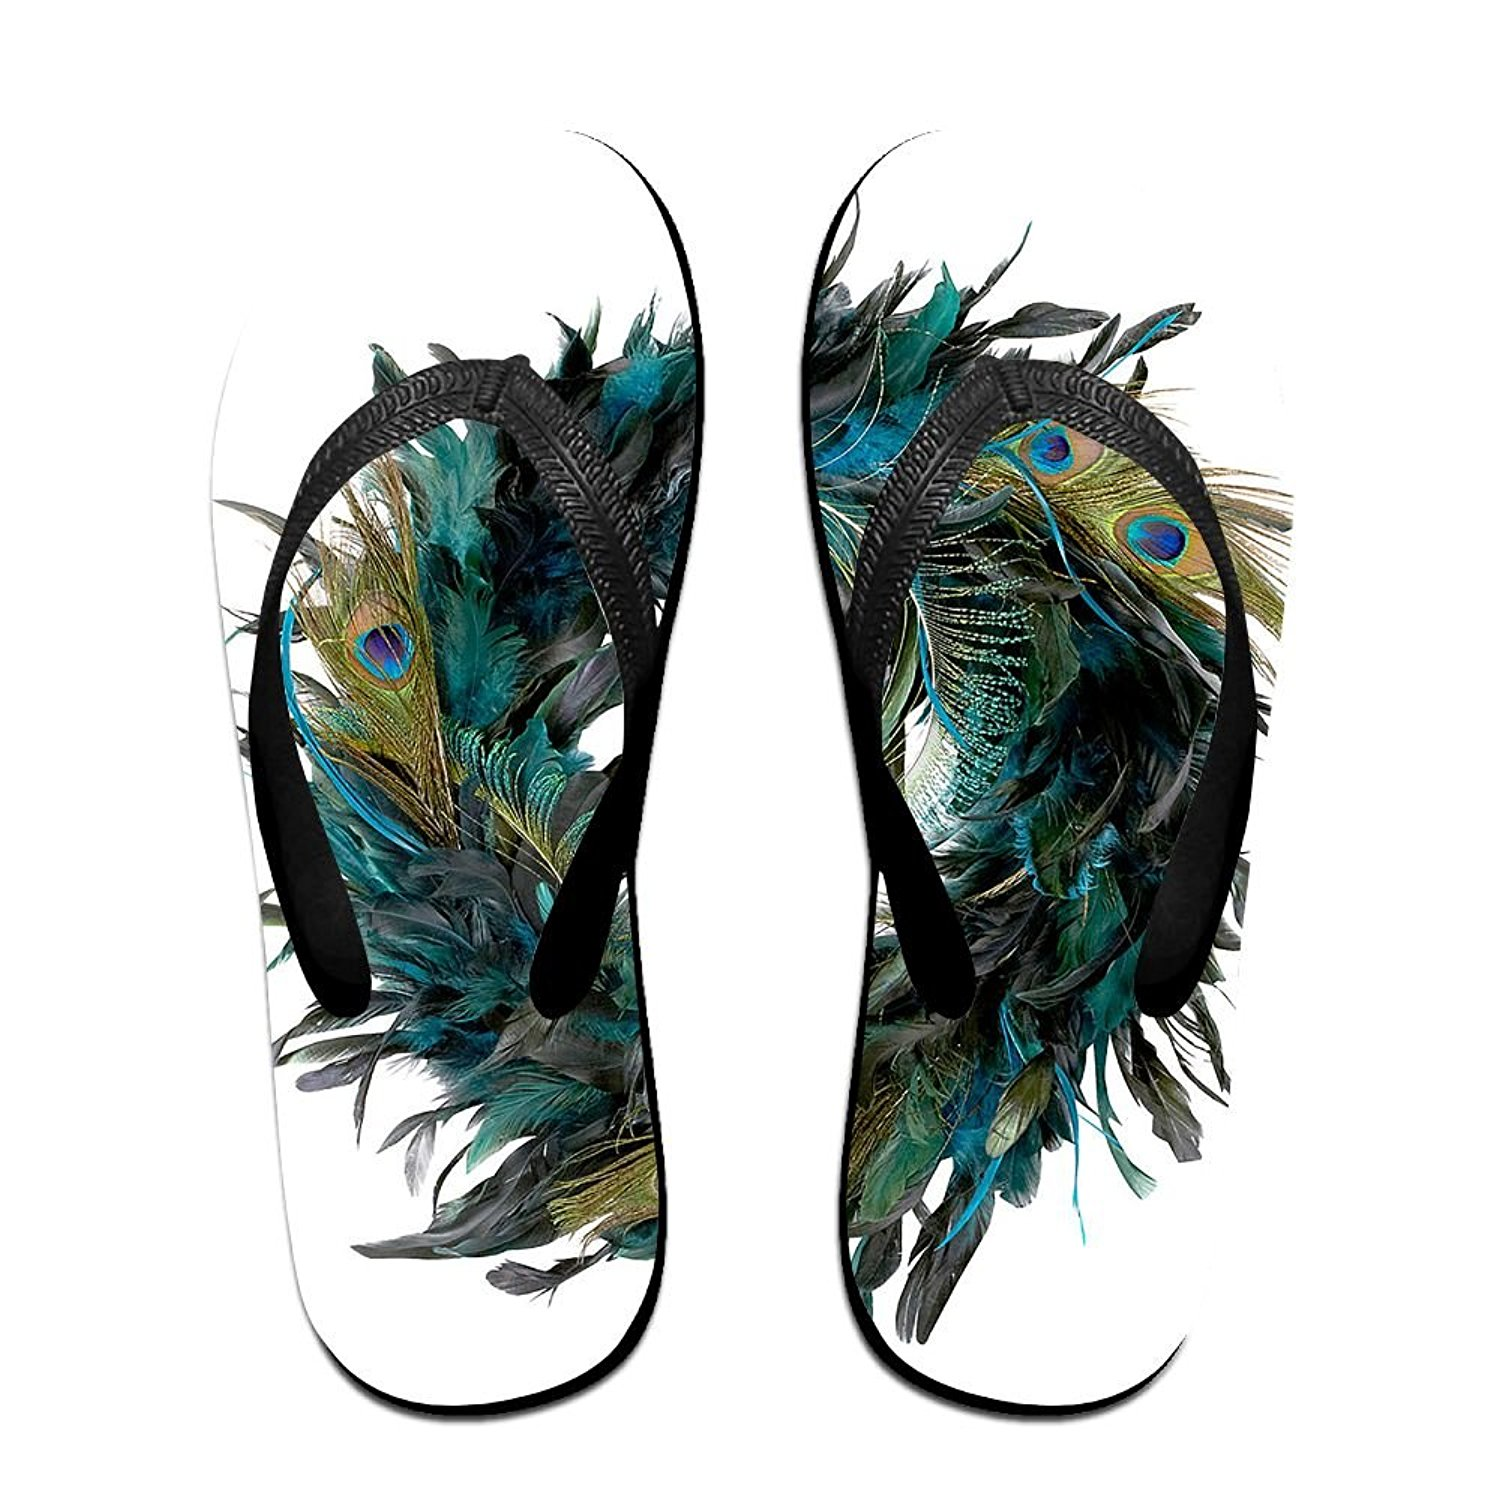 7805b755a3aa01 Get Quotations · Unisex Summer Peacock Feathers Beach Slippers Home  Flip-Flop Flat Thong Sandal Shoes